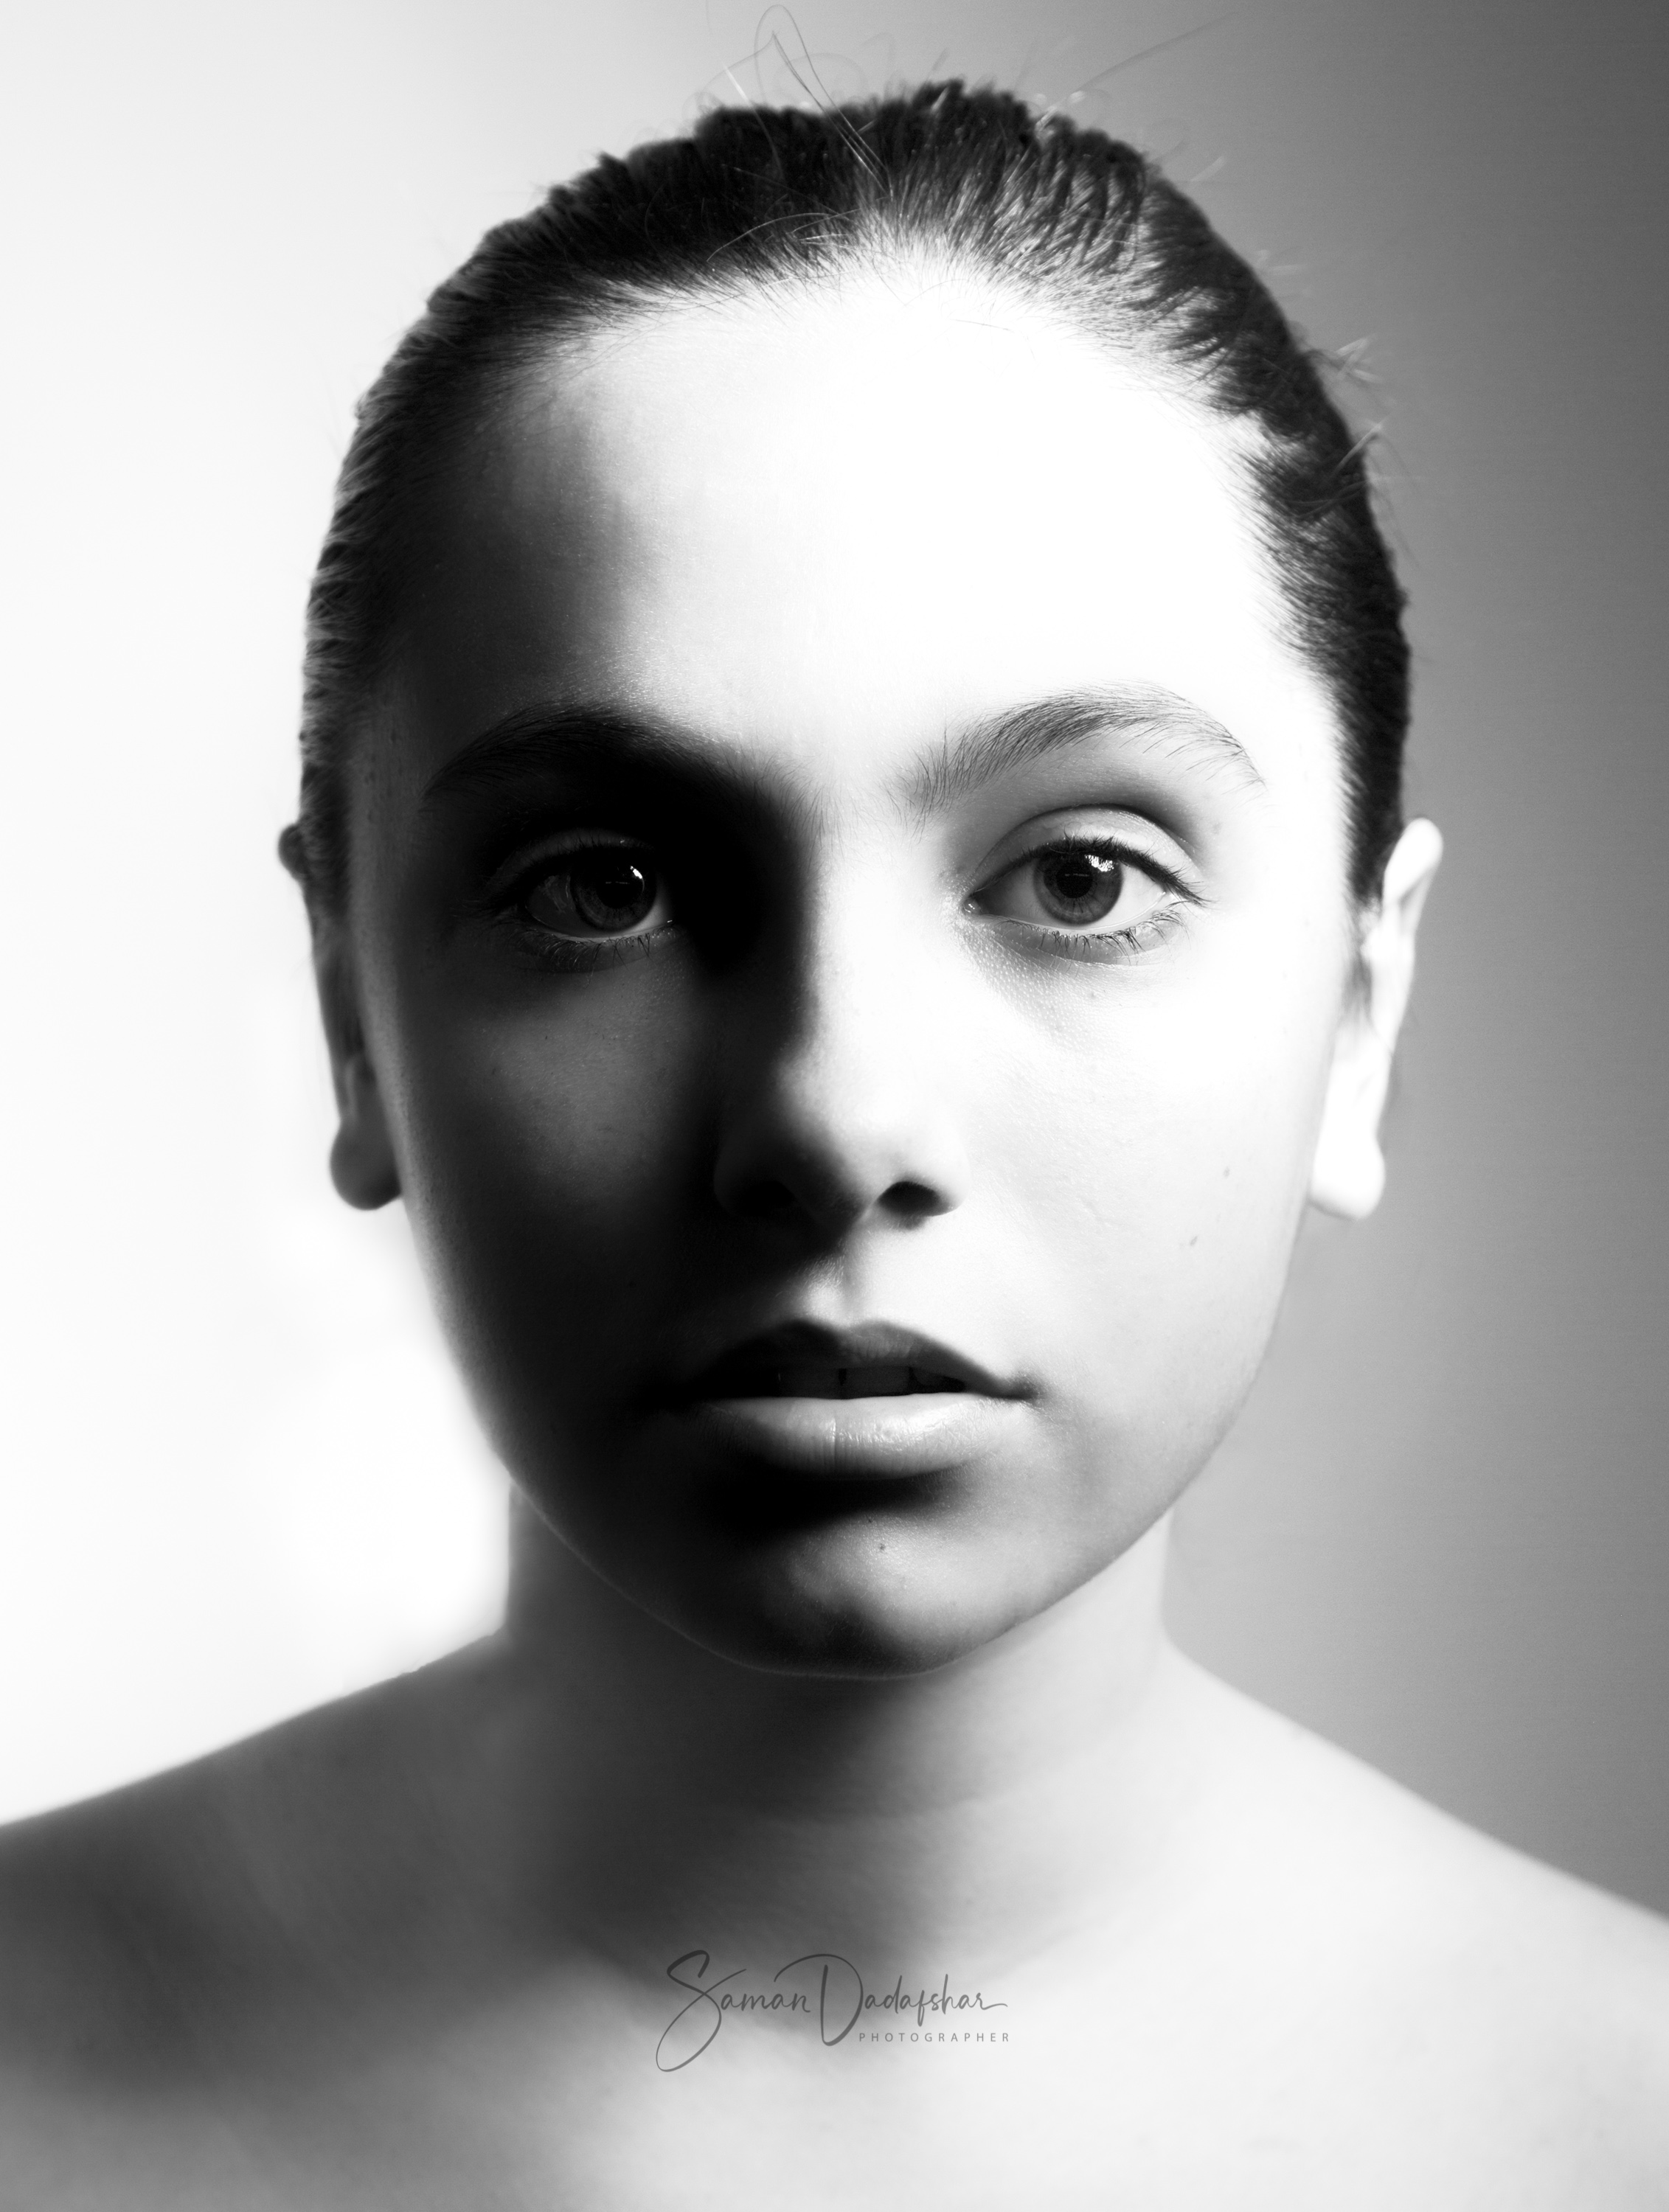 Black and White portrait of female model with split lighting